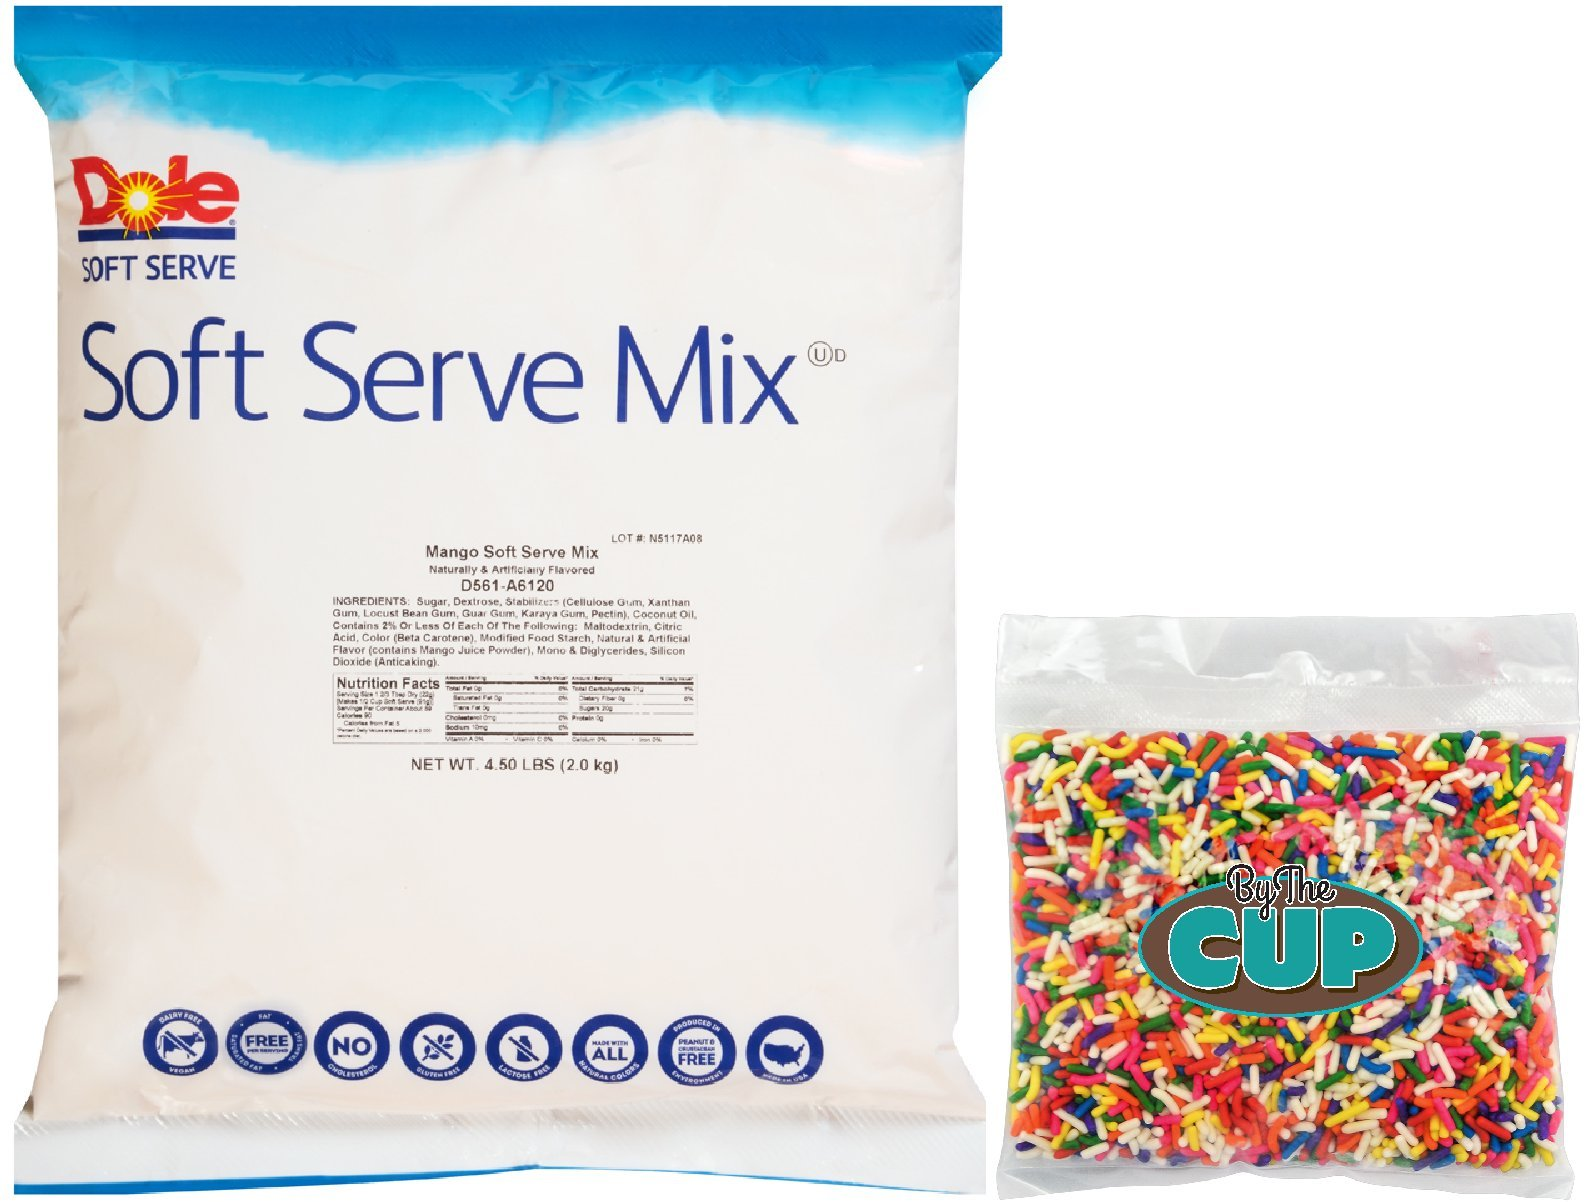 Dole Soft Serve Mix - Mango Dole Whip, Lactose-Free Soft Serve Ice Cream Mix, 4.50 Pound Bag - with By The Cup Rainbow Sprinkles